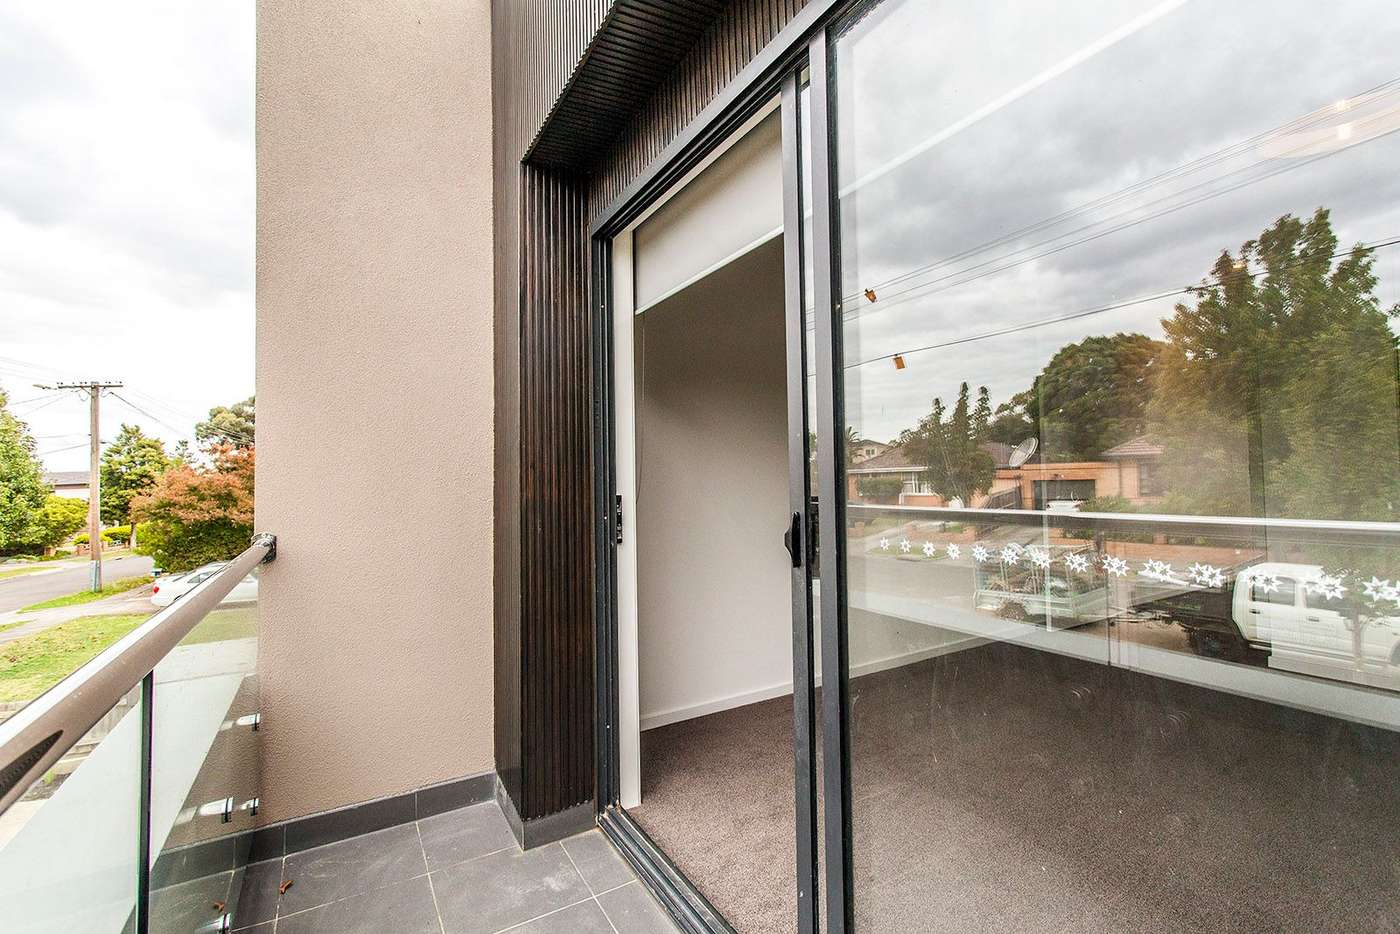 Seventh view of Homely townhouse listing, 13 Pine Way, Doncaster East VIC 3109